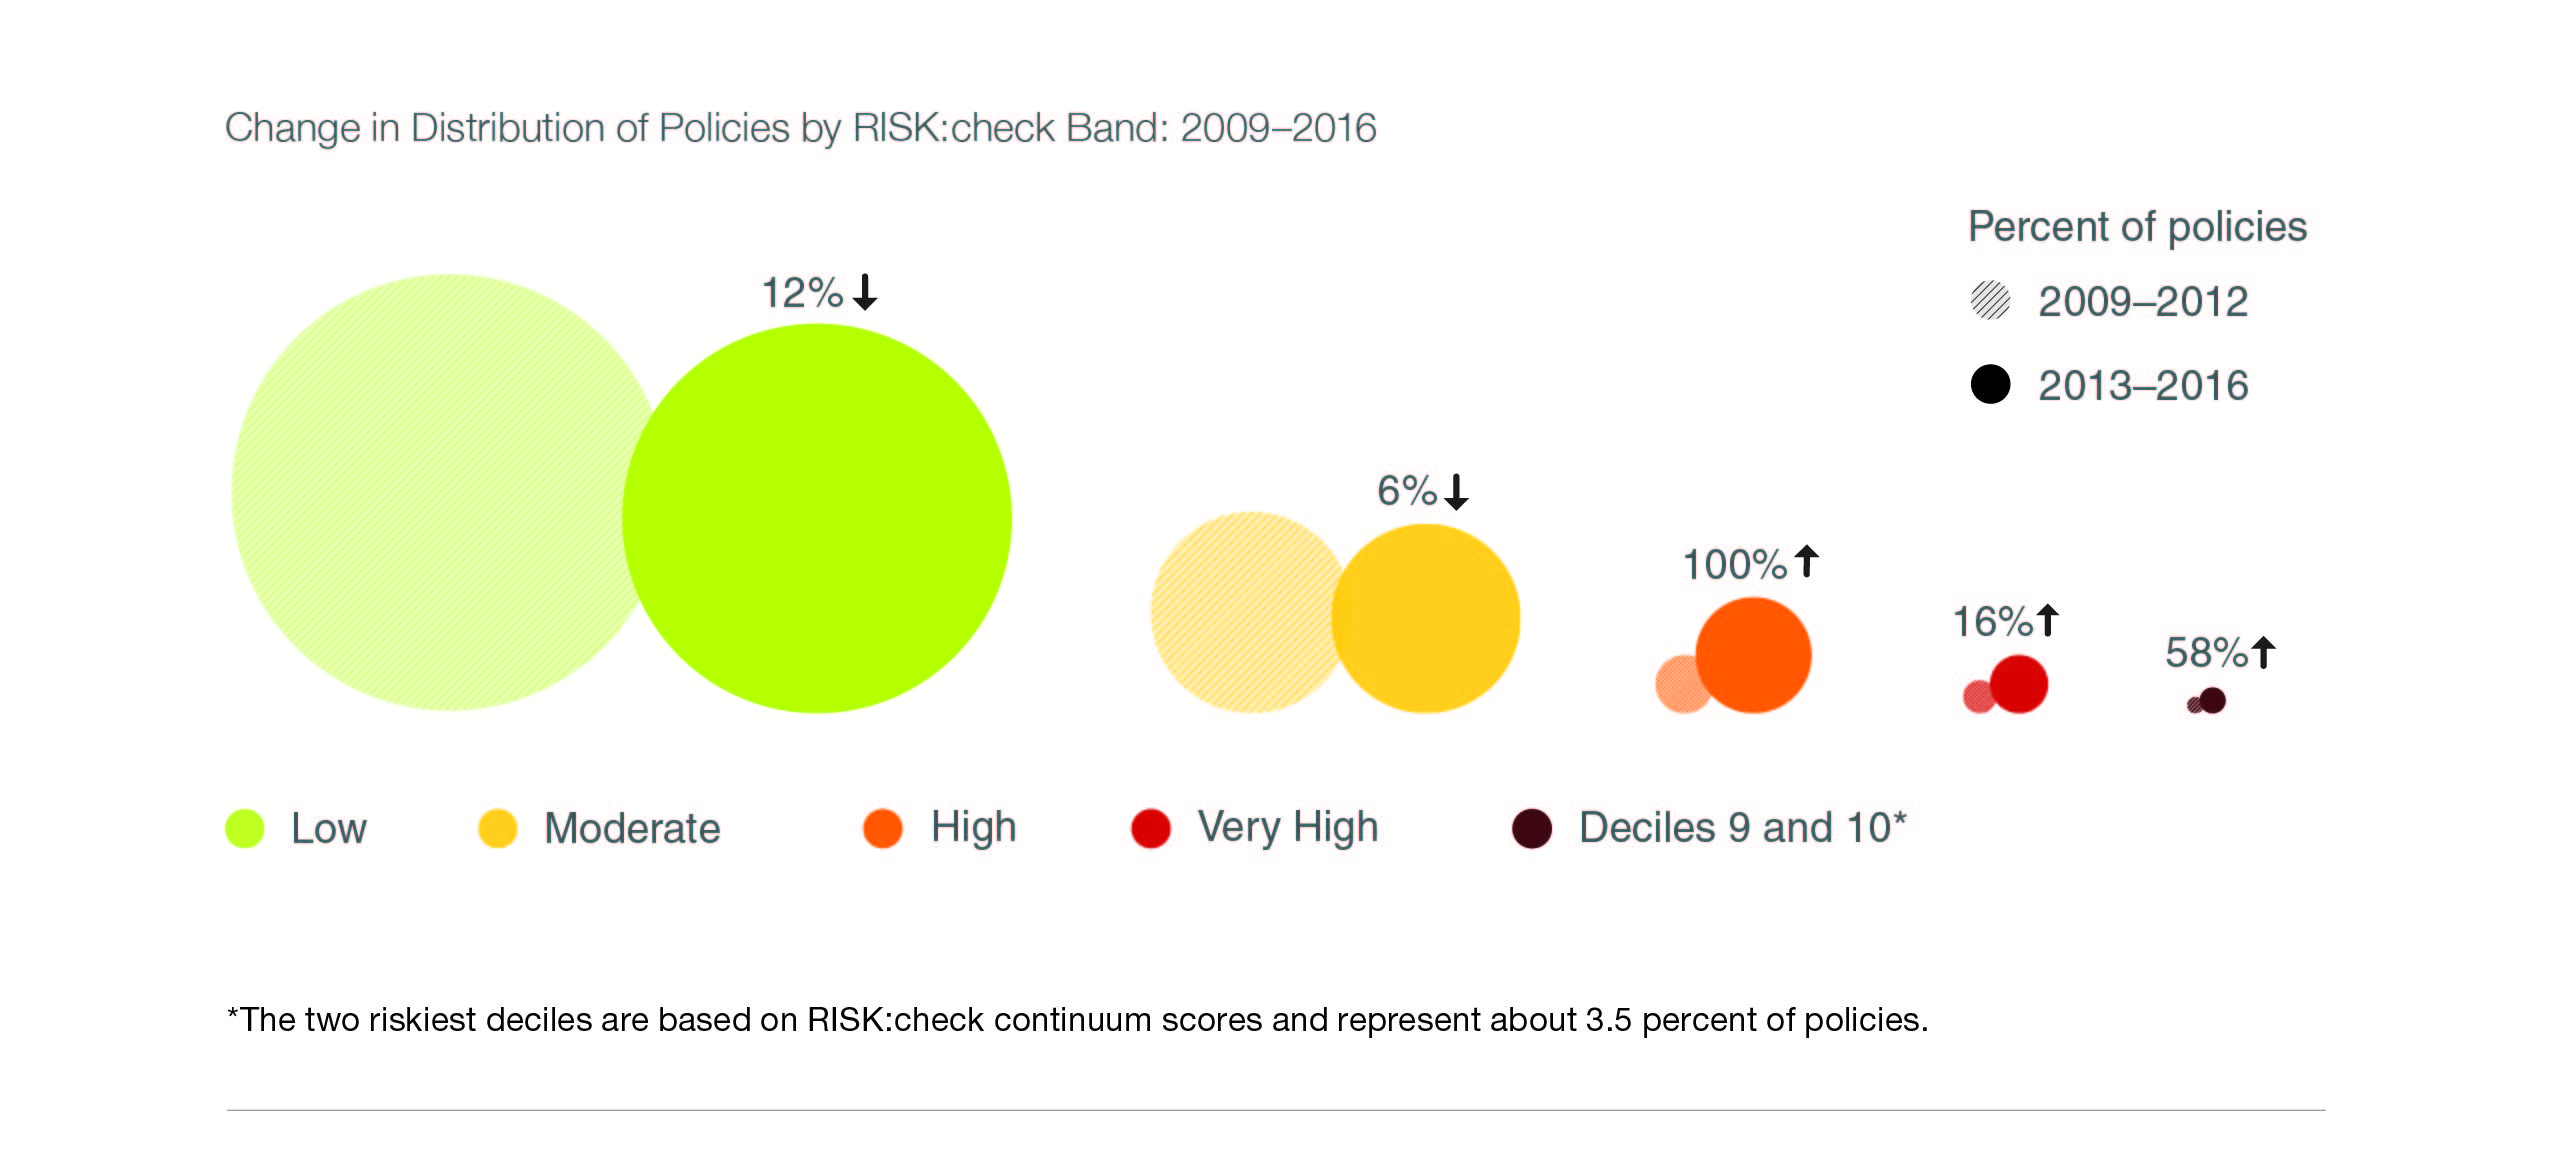 Changes in Distribution of Policies by RISKcheck Band 2009 2016